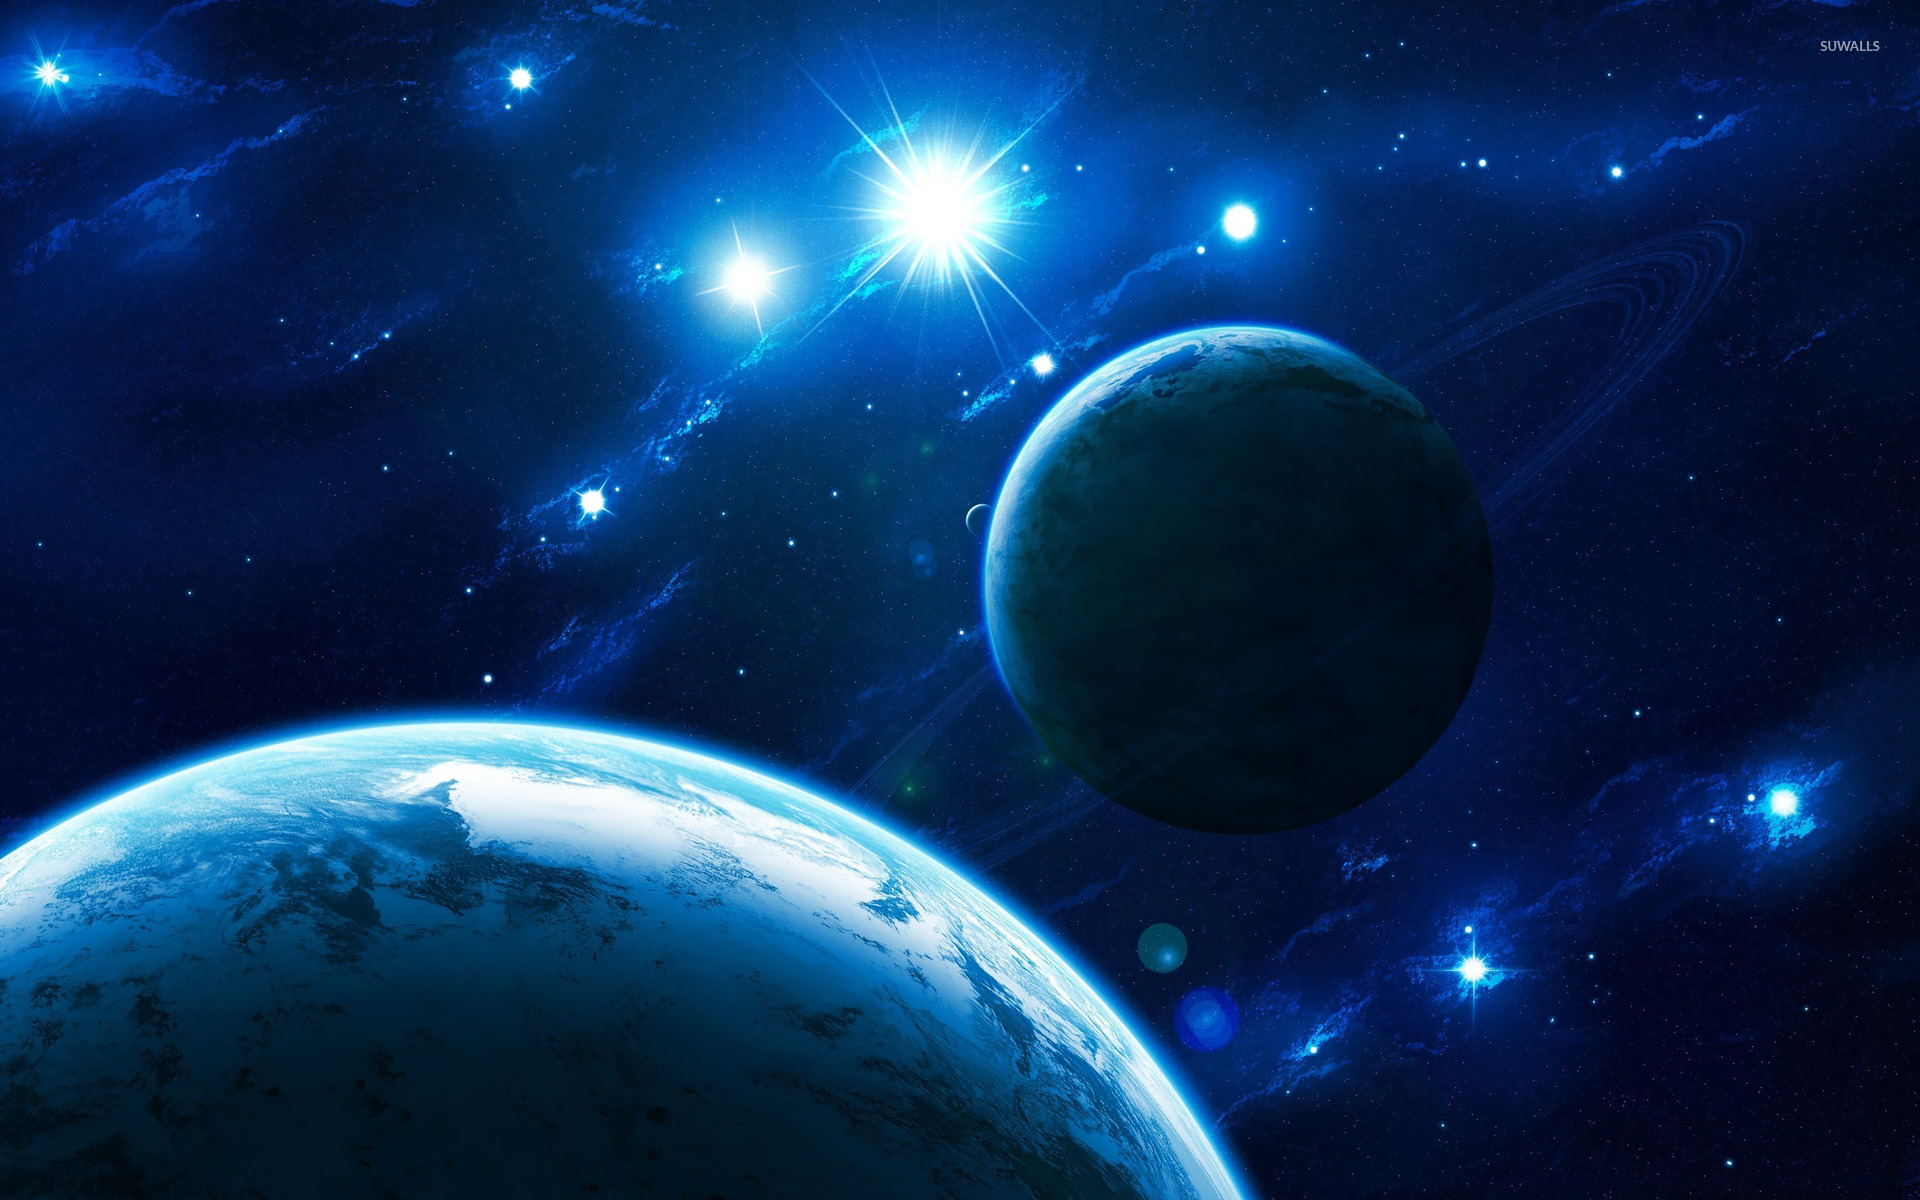 Blue light in space wallpaper   Space wallpapers   21864 1366x768